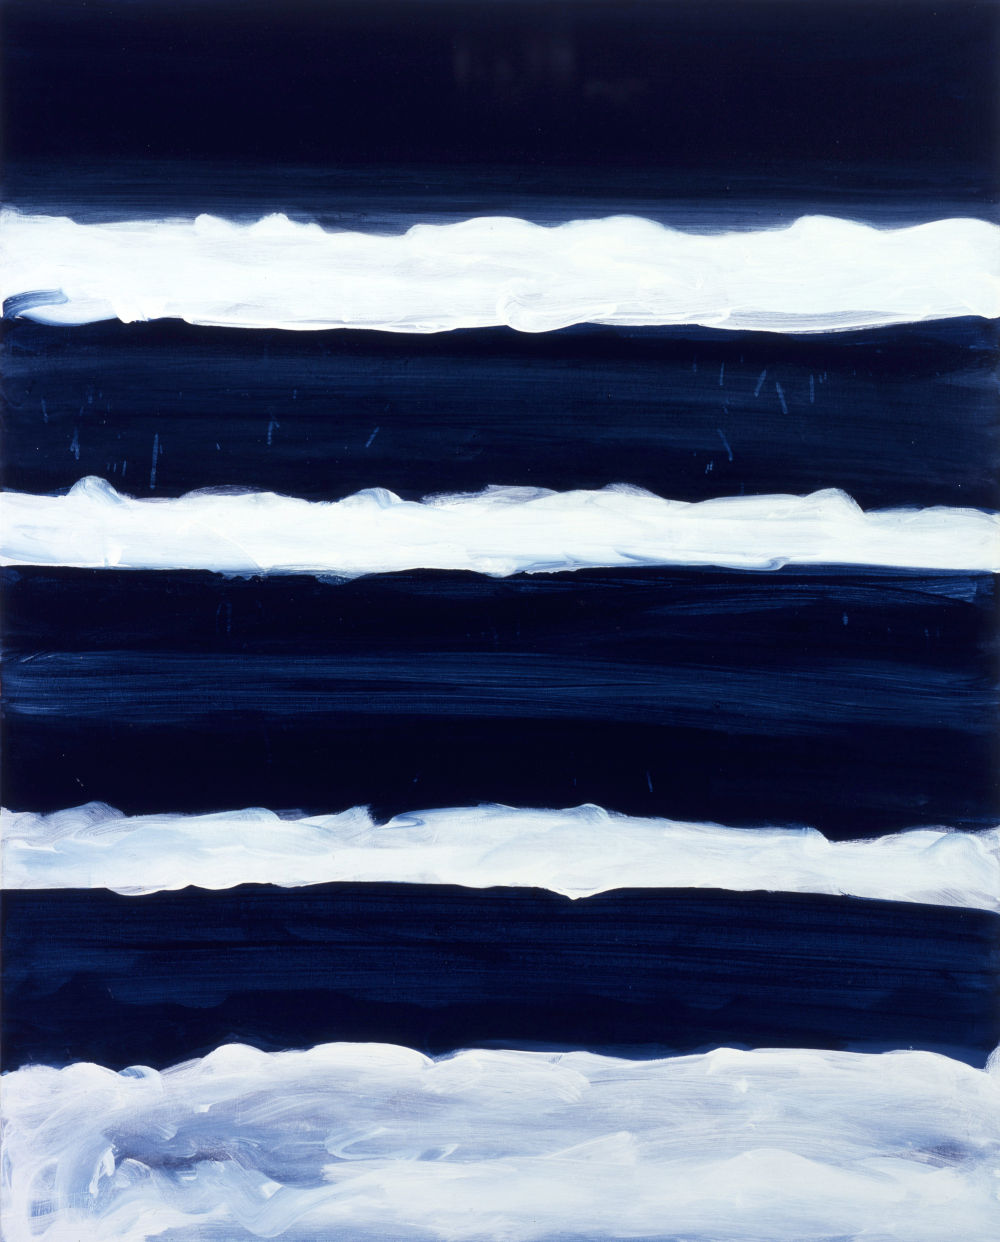 Mary Heilmann, Night Swimmer, 1998. Oil on canvas 50 1/8 x 40 1/8 x 1 3/8 inches (127.3 x 101.9 x 3.5 cm) © 2019 Mary Heilmann. Courtesy of the artist; 303 Gallery, New York; and Hauser & Wirth, London